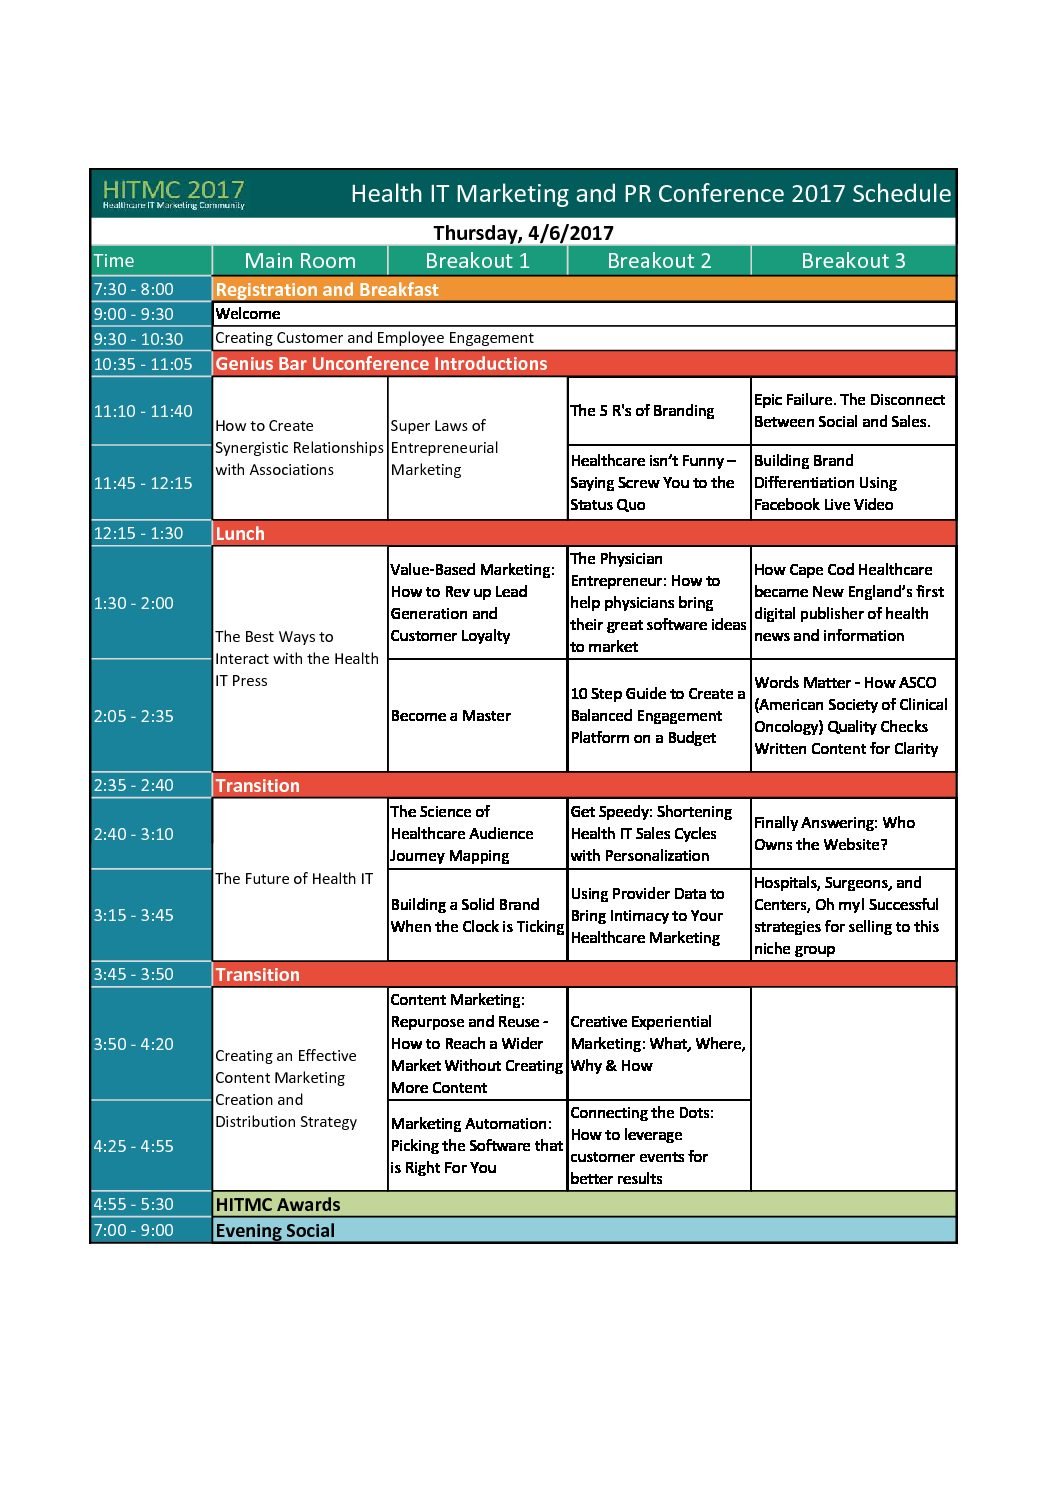 Health IT Marketing and PR Conference 2017 Schedule-at-a-Glance